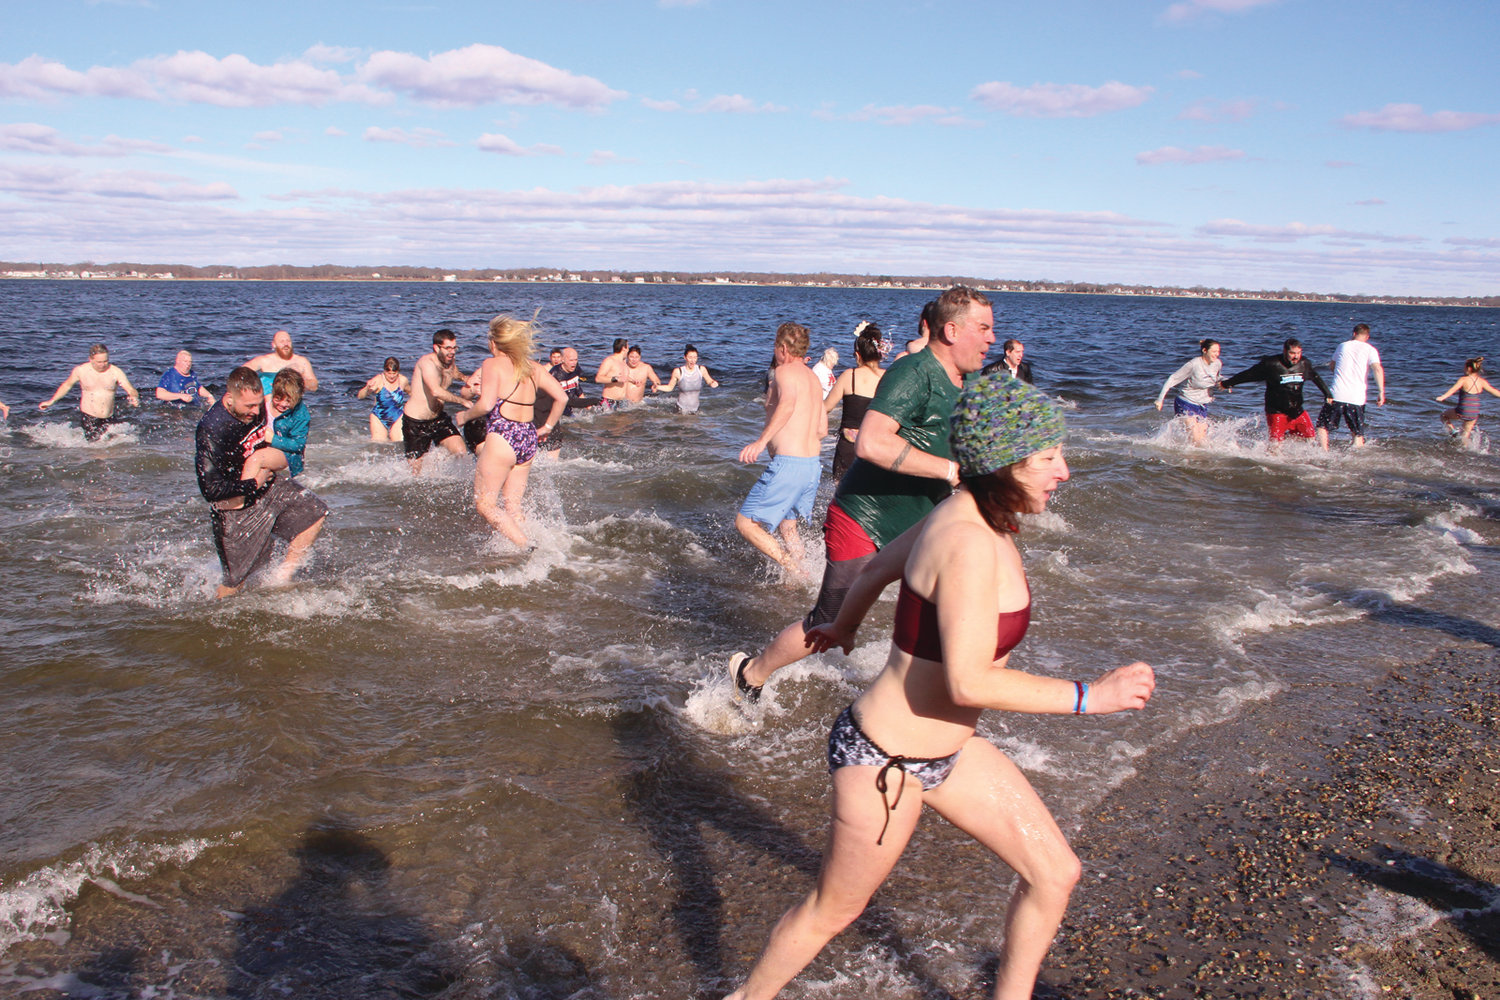 IN AND OUT: As quickly as participants raced into the water, those who preceded them ran to get out.